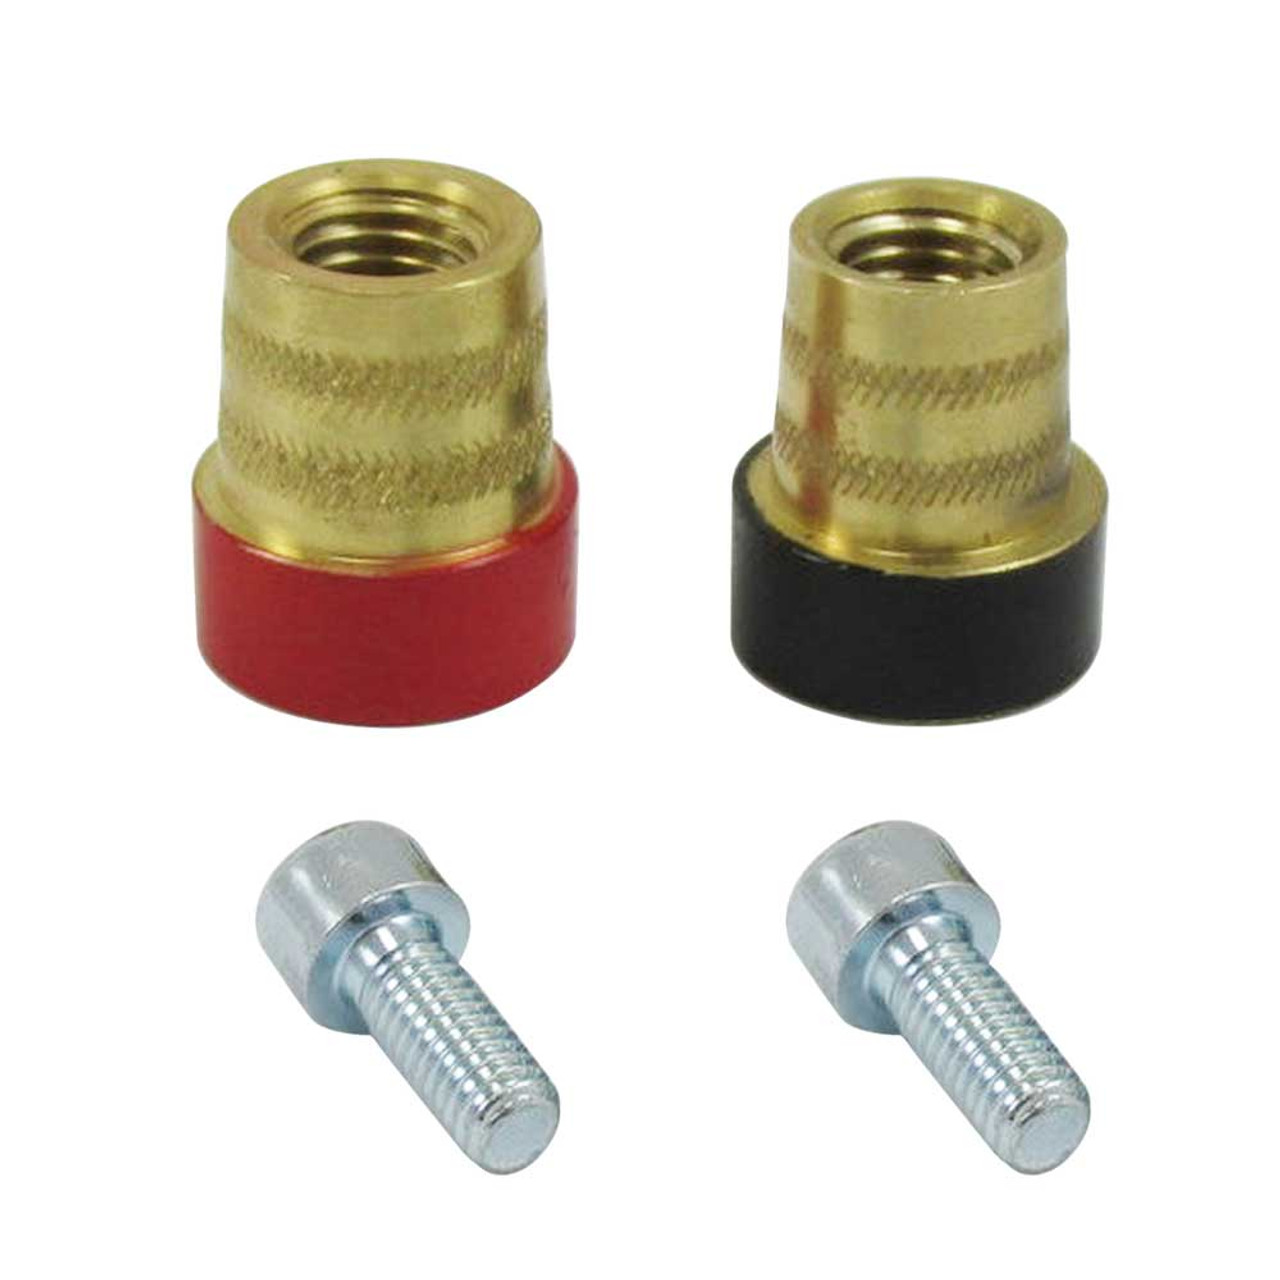 WIRTHCO ENGINEERING 80824 Vinyl Quick Disconnect 25 Pack